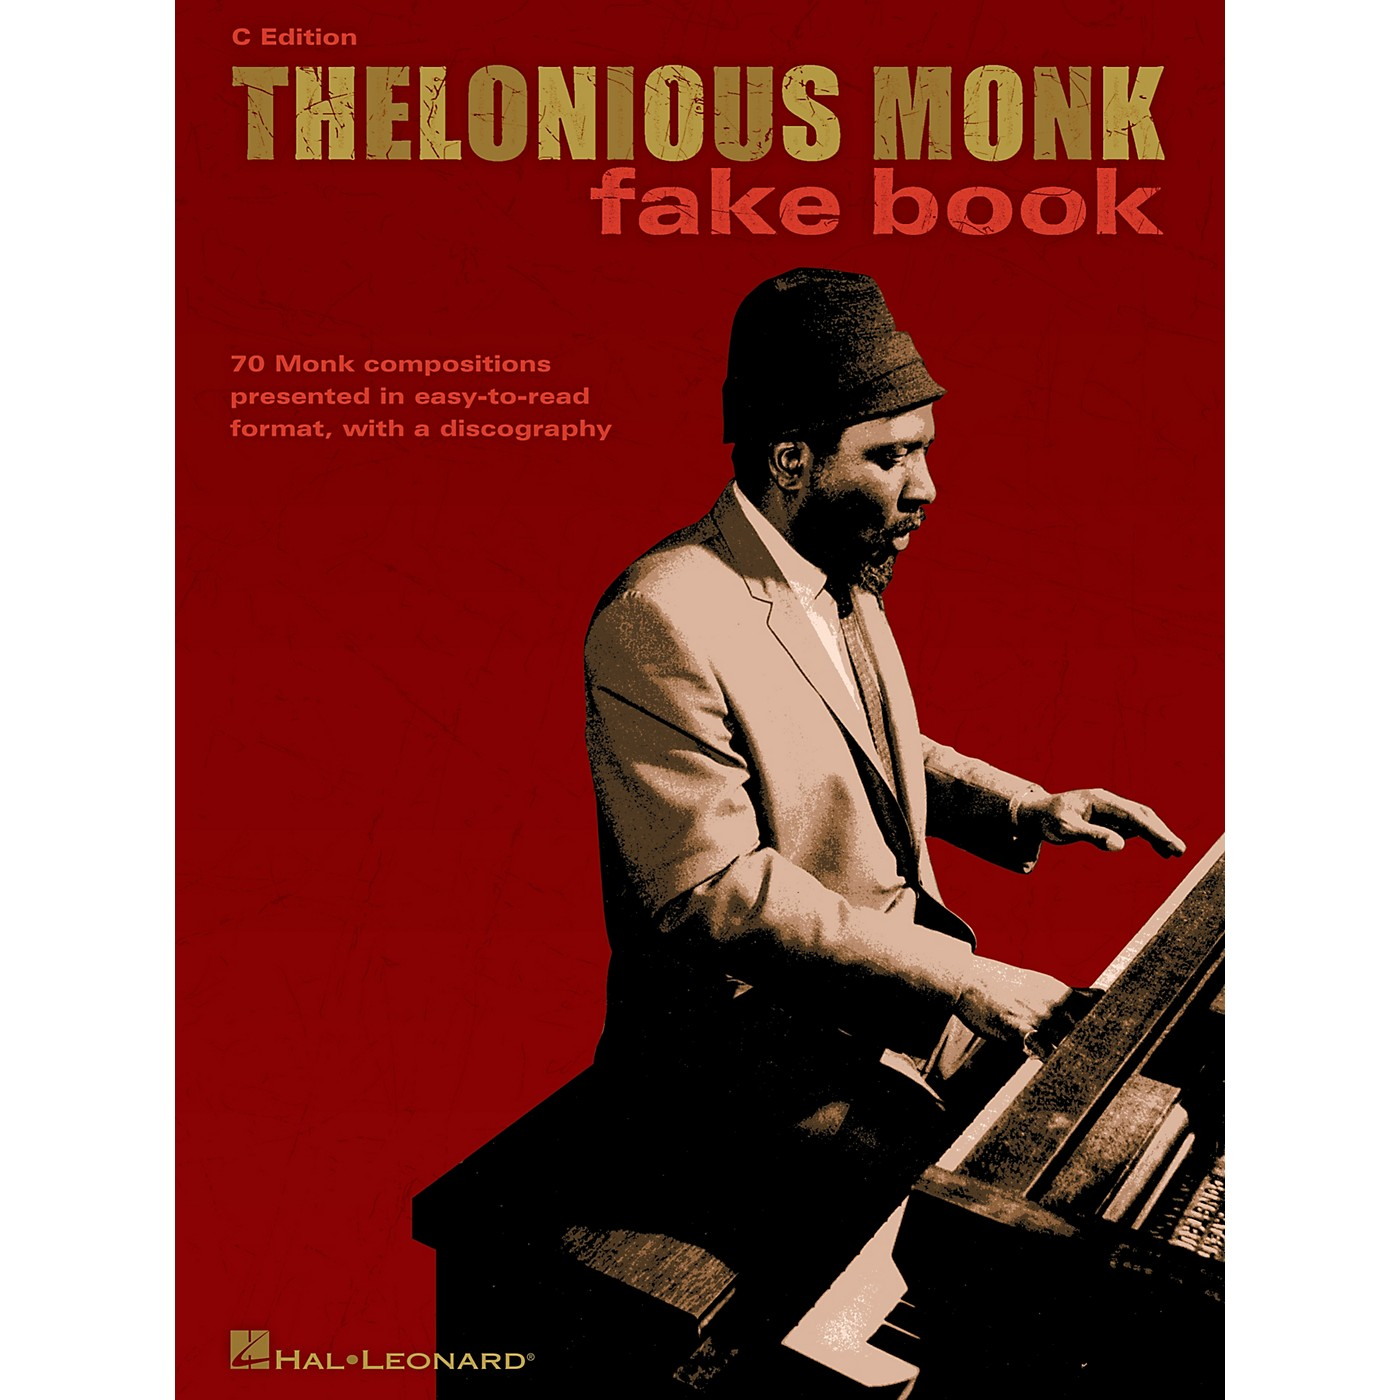 Hal Leonard Thelonious Monk Fake Book (C Edition) Artist Books Series Performed by Thelonious Monk thumbnail